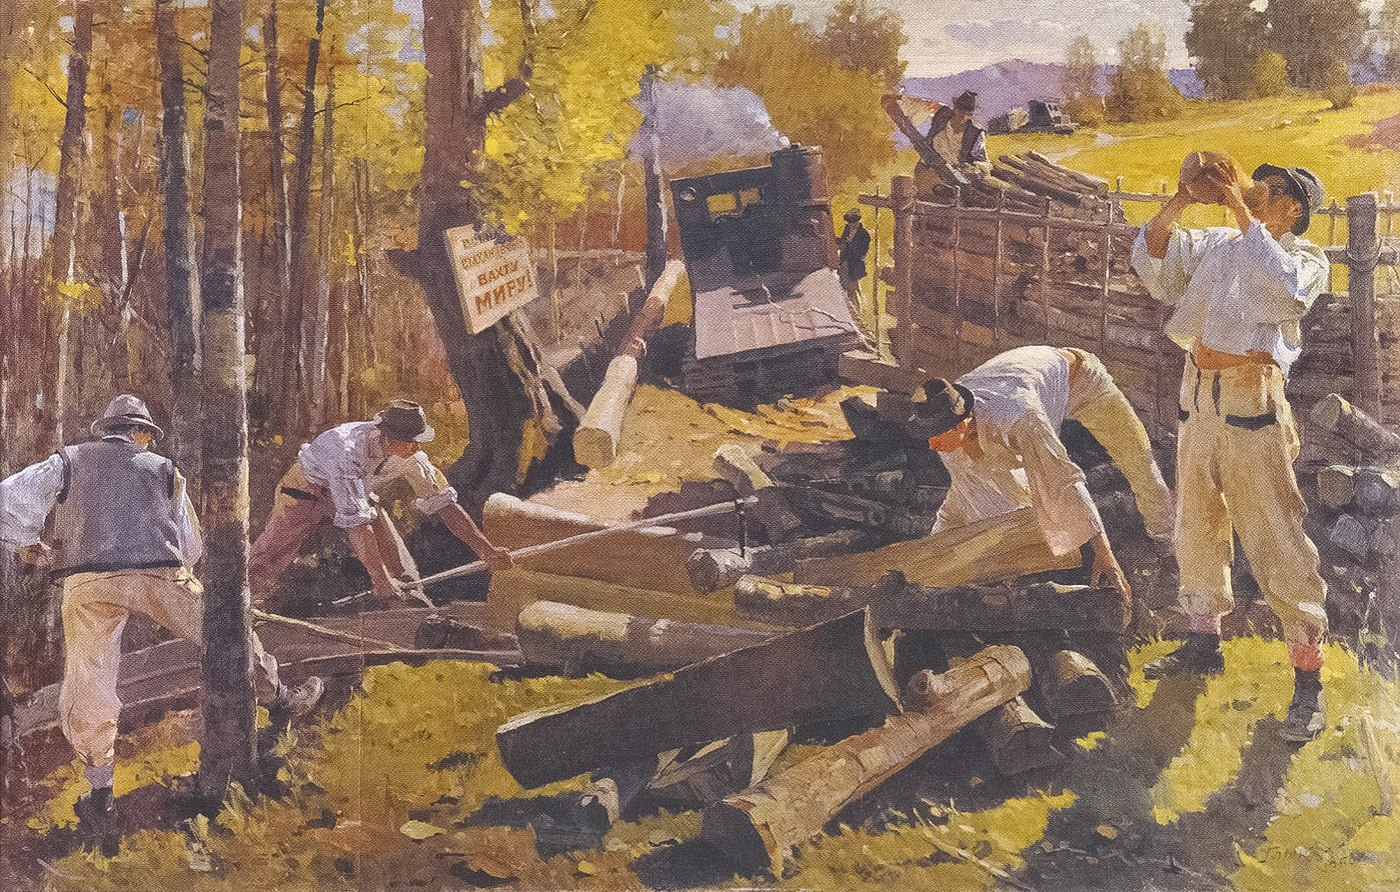 G. Gluck 'Loggers Defending Peace', 1950, oil on canvas, 152x240